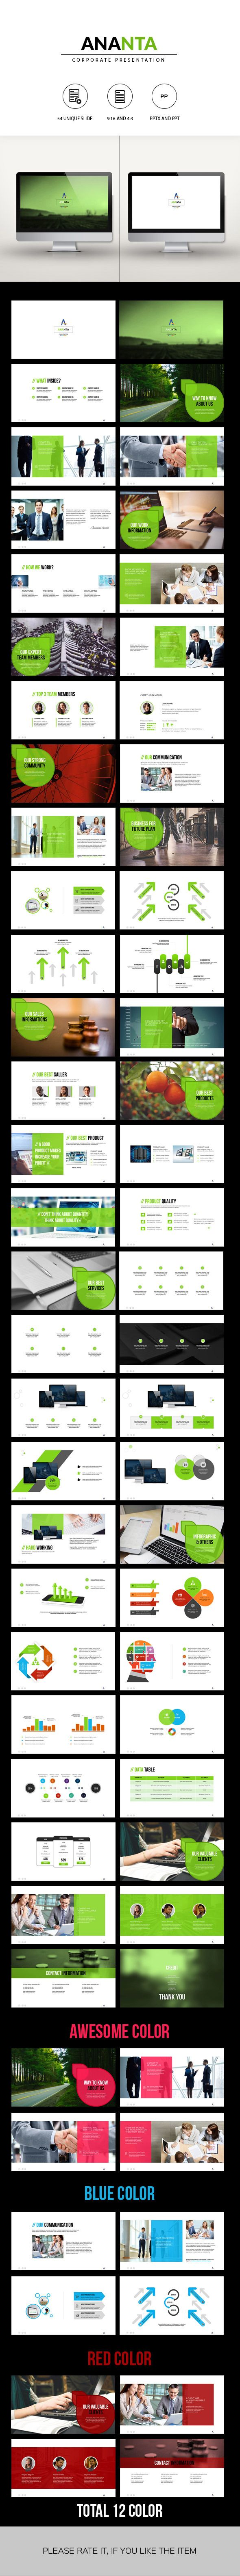 ANANTA | Corporate Powerpoint Template - Business PowerPoint Templates